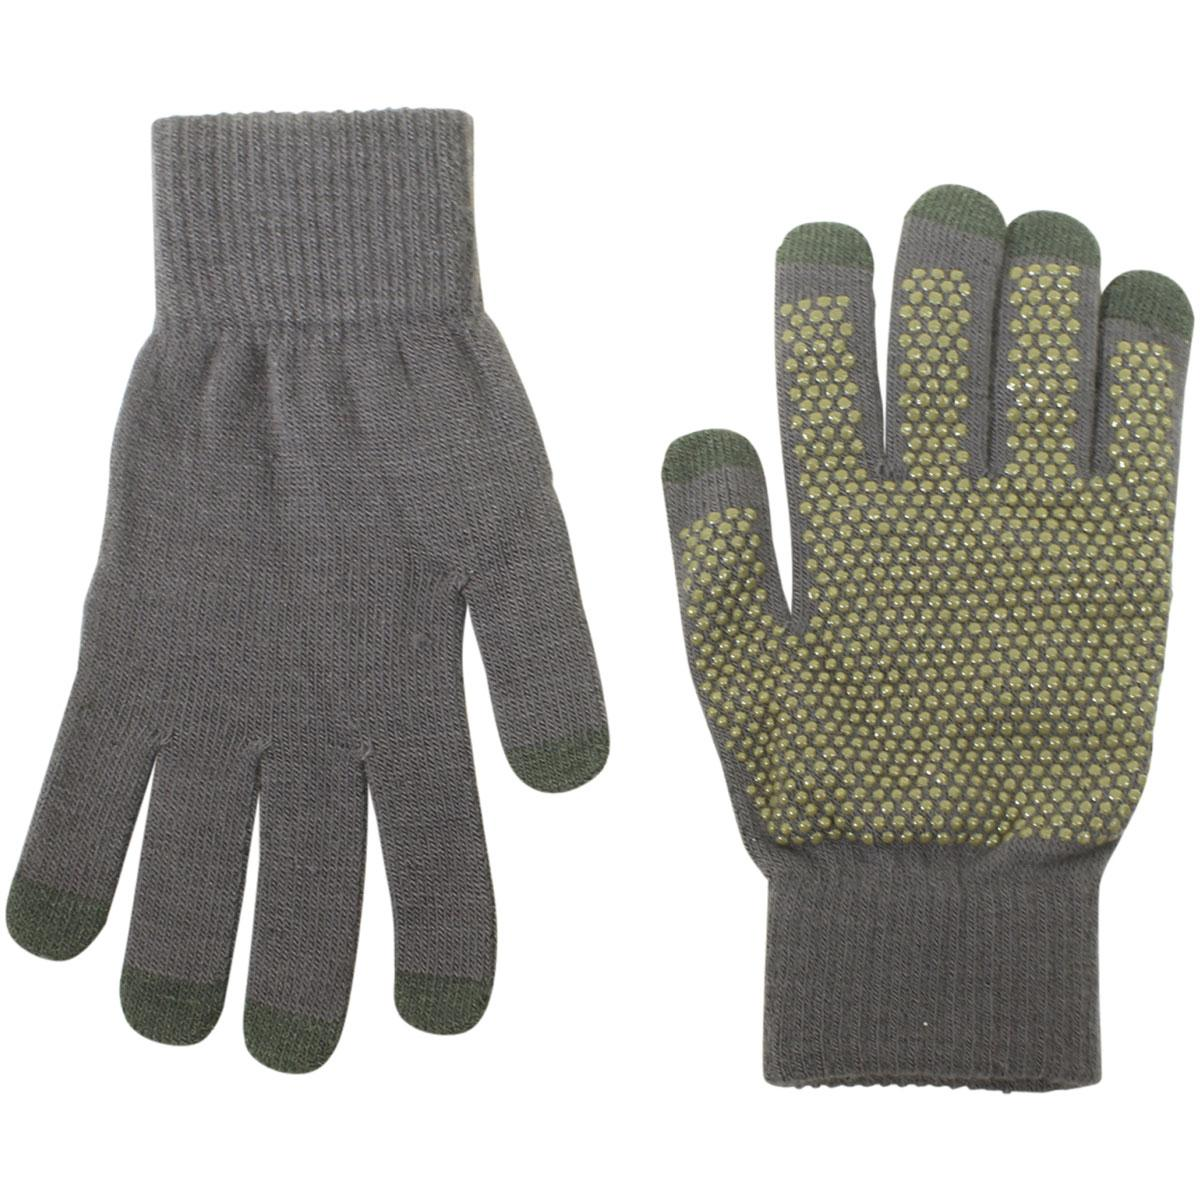 Image of Dorfman Pacific Men's Touchscreen Knit Gloves - Grey - One Size Fits Most